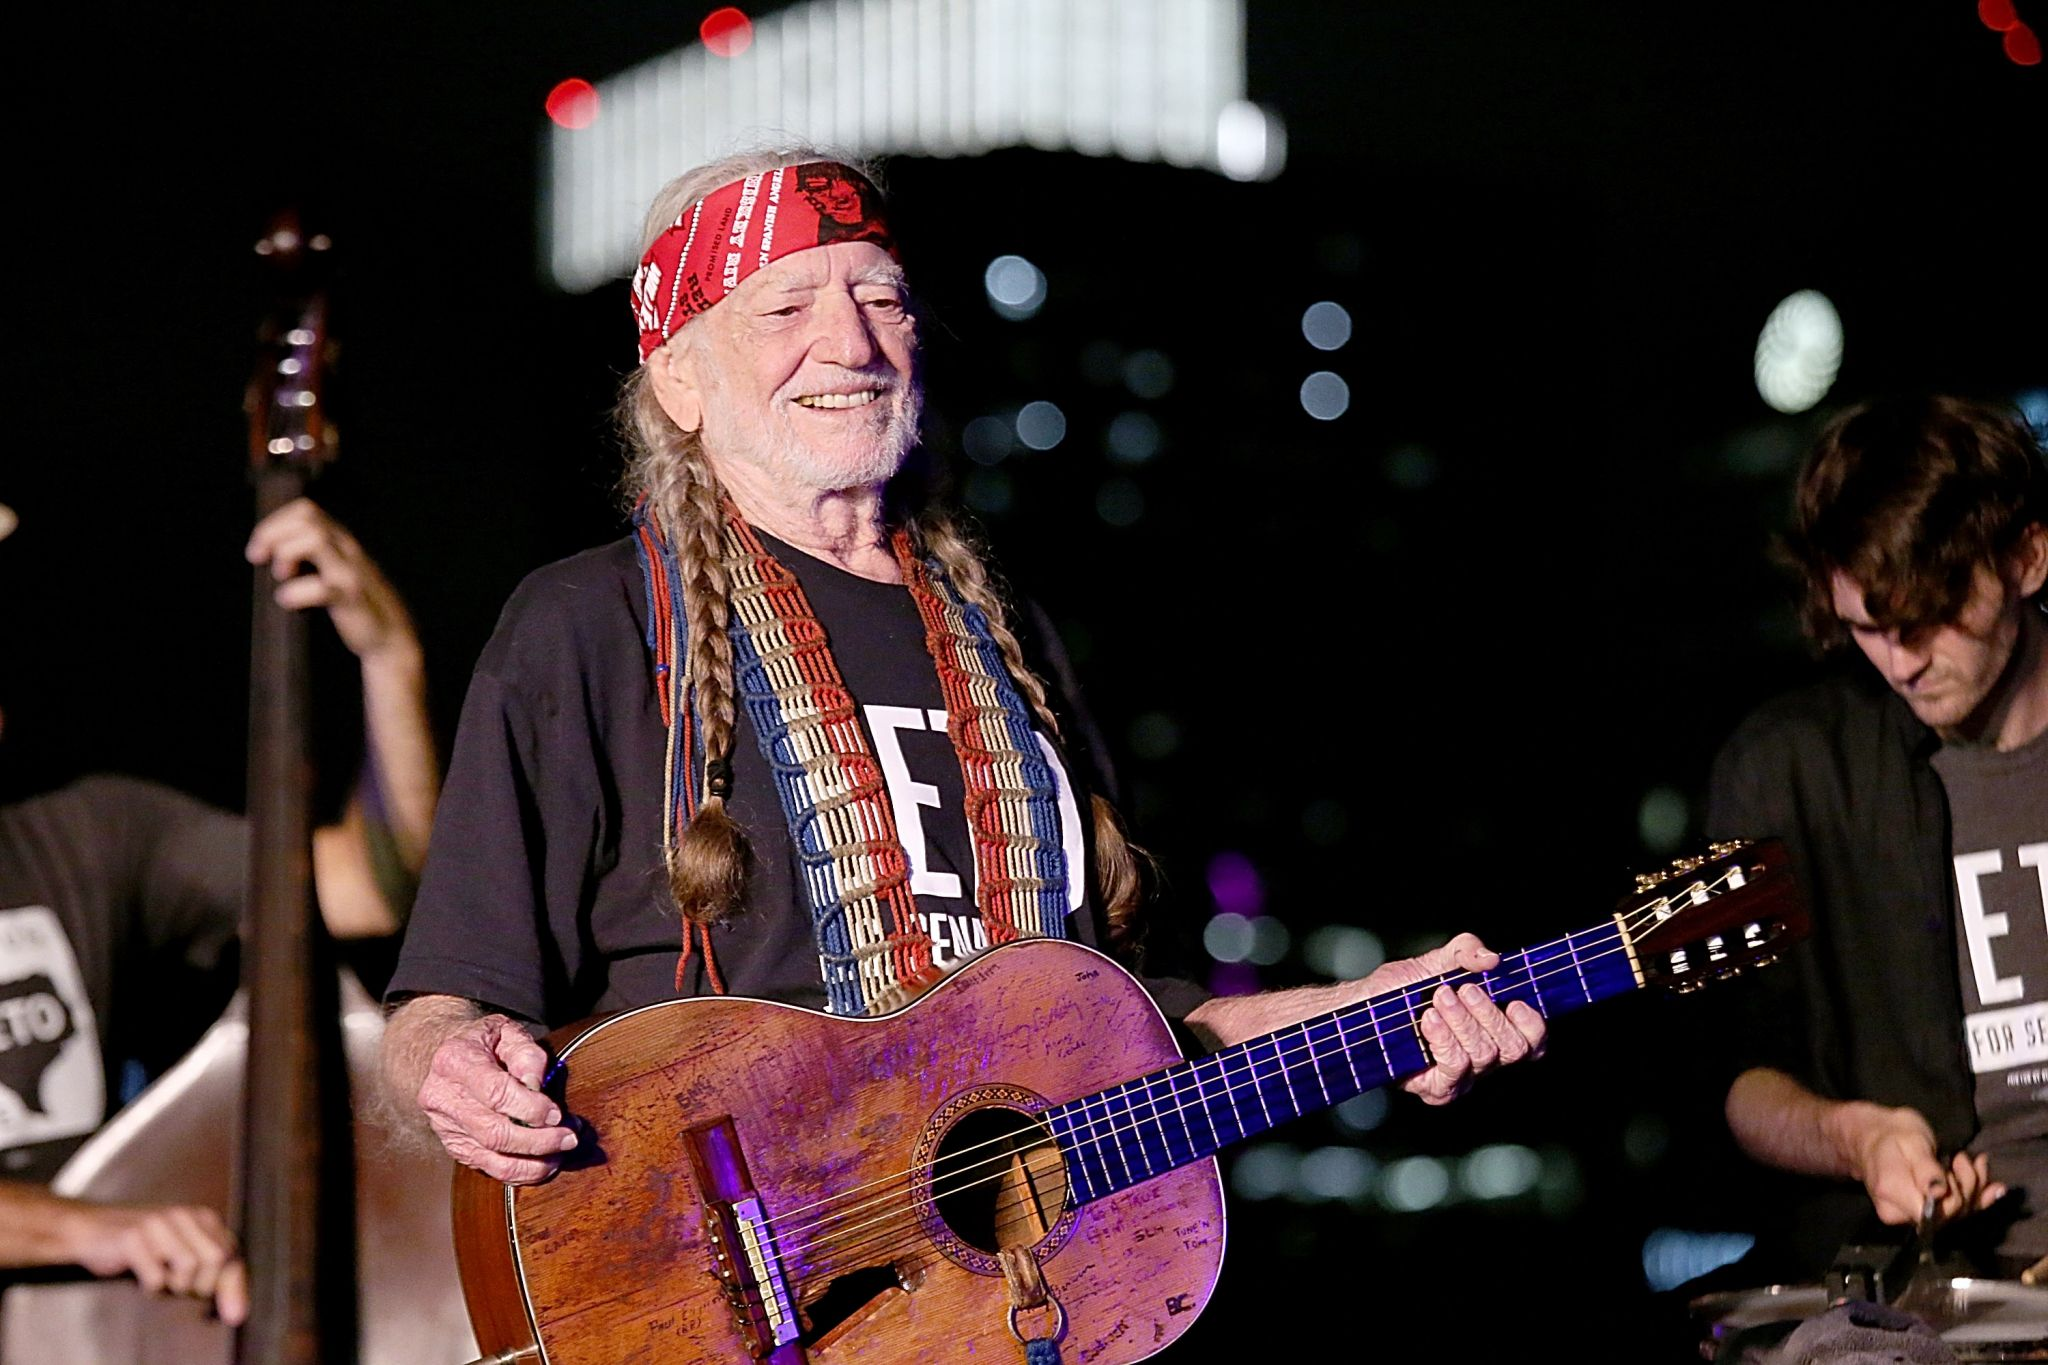 Willie Nelson set to perform 2 San Antonio shows in November